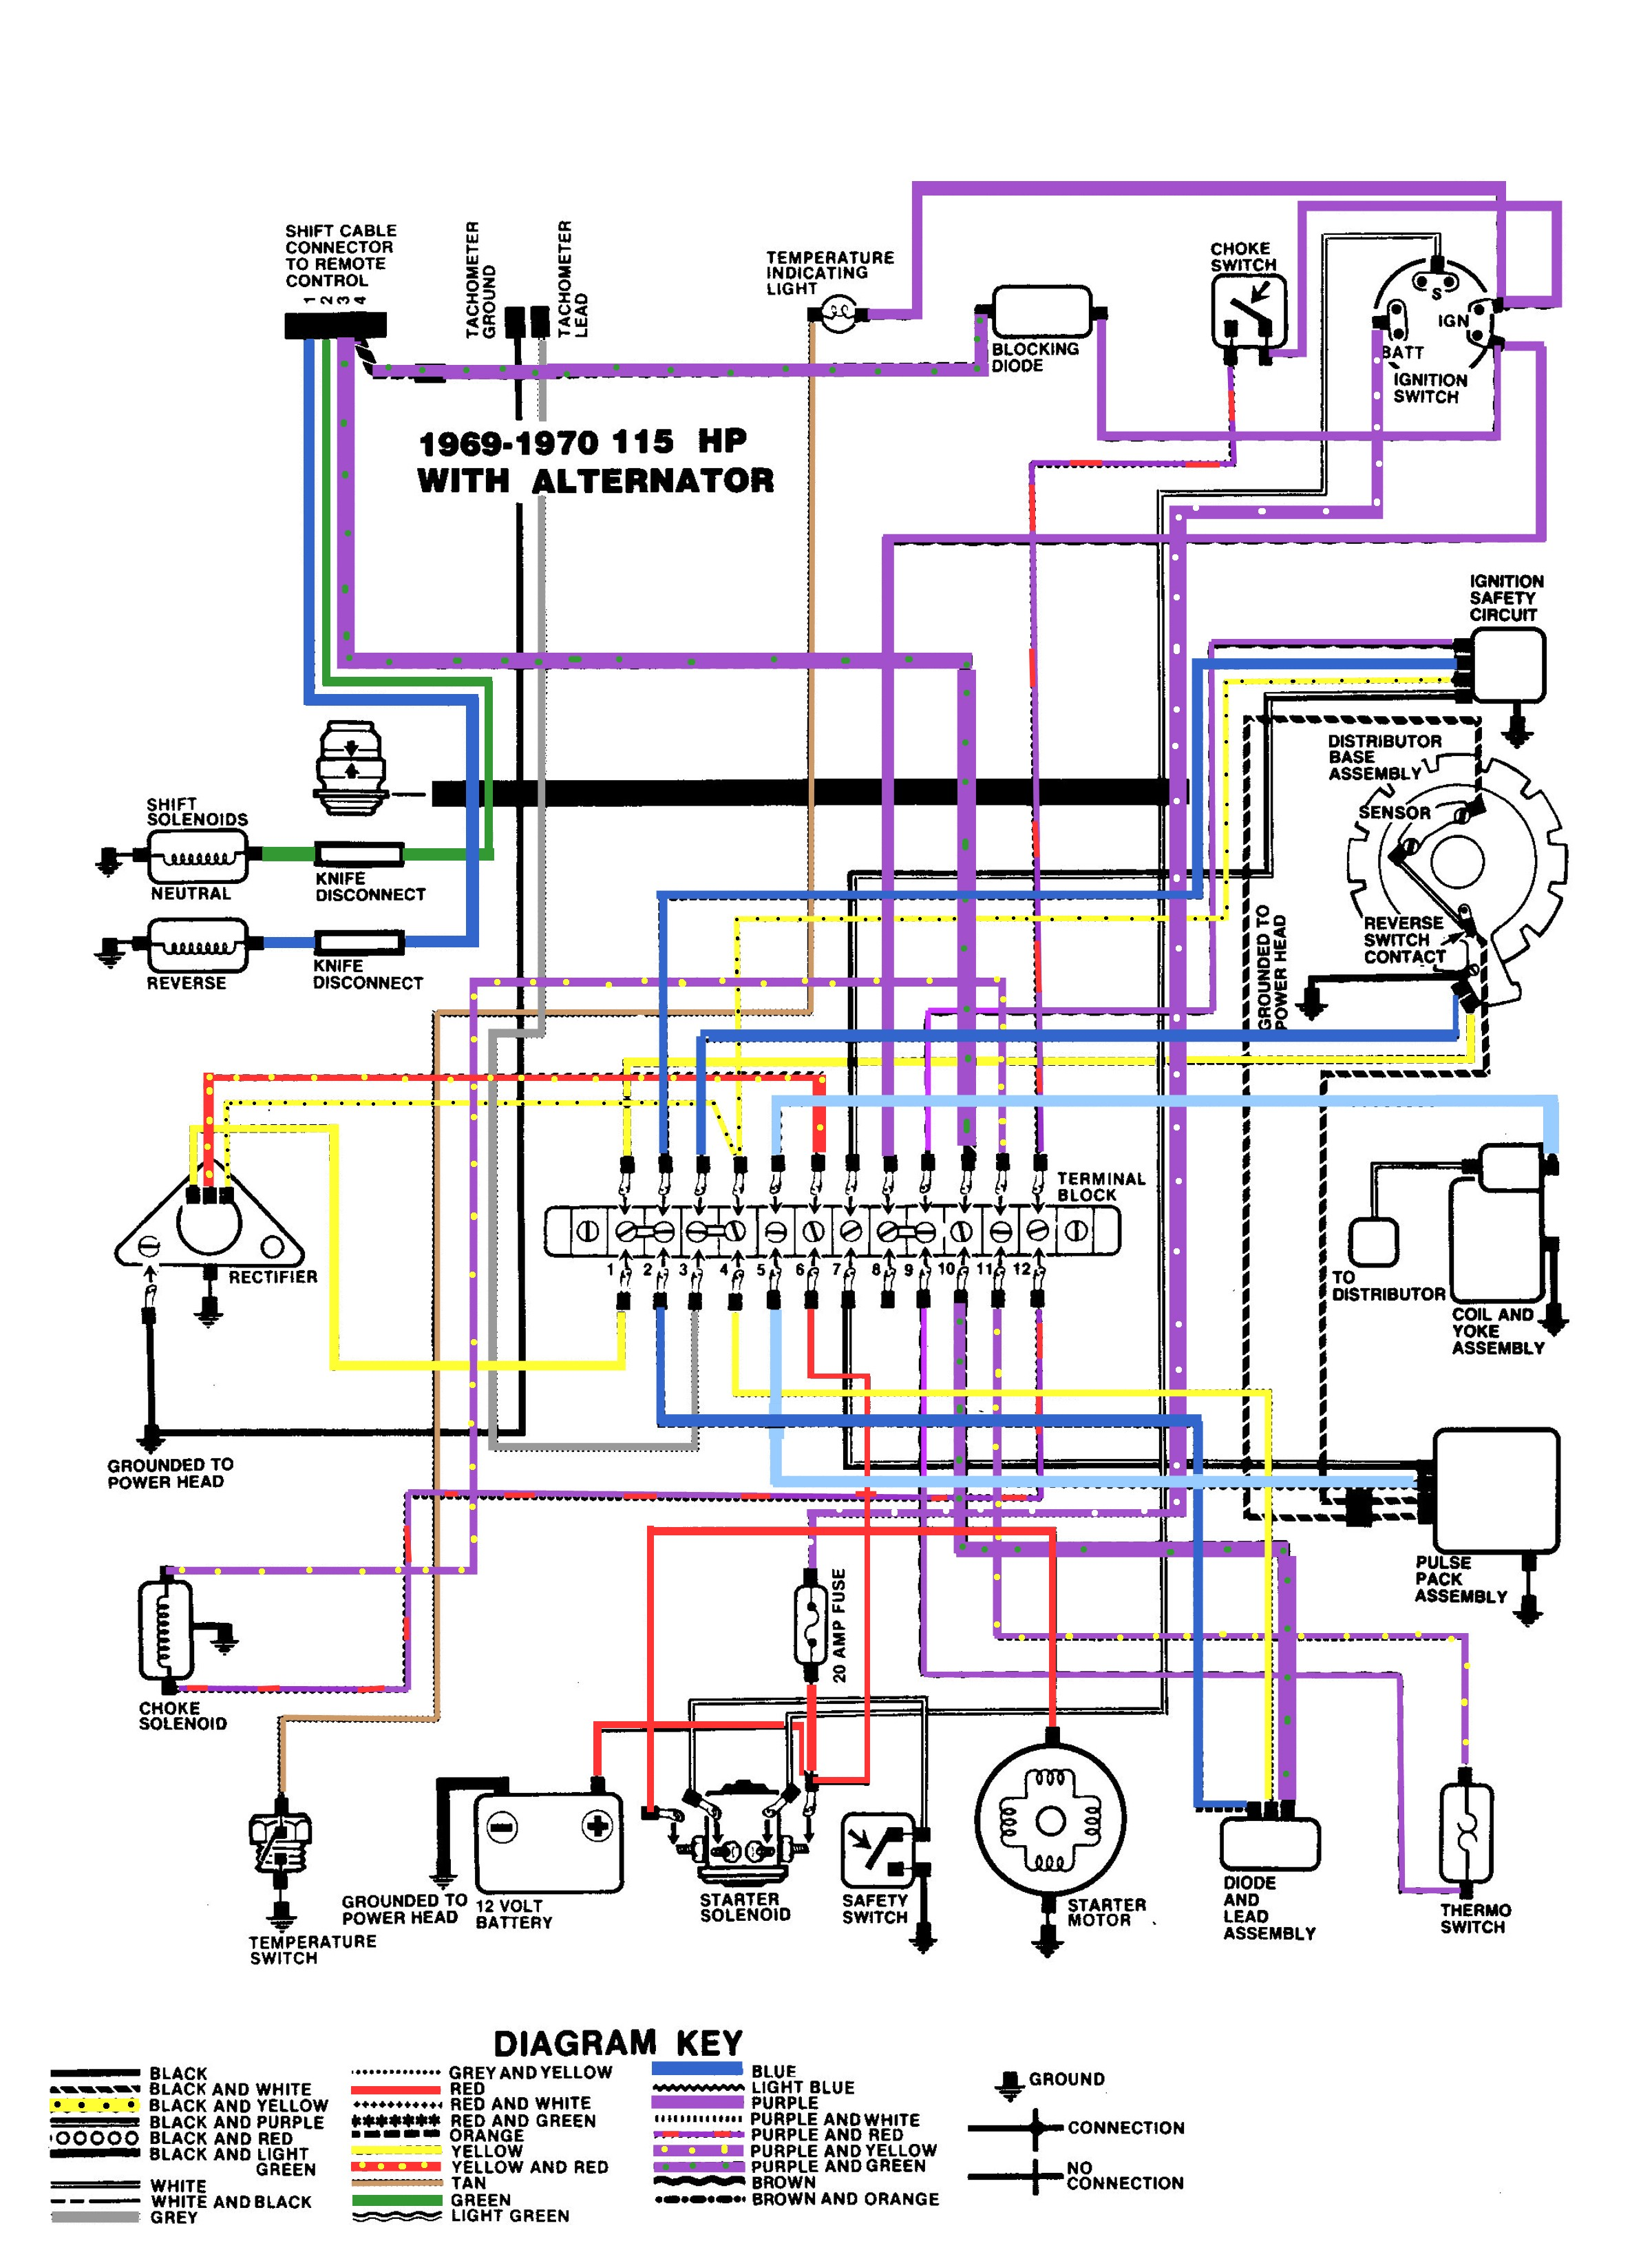 1968 Johnson 100HP V4 Selectric Wiring Diagram with CD Ignition 1969 1970 Jego 115HP Wiring